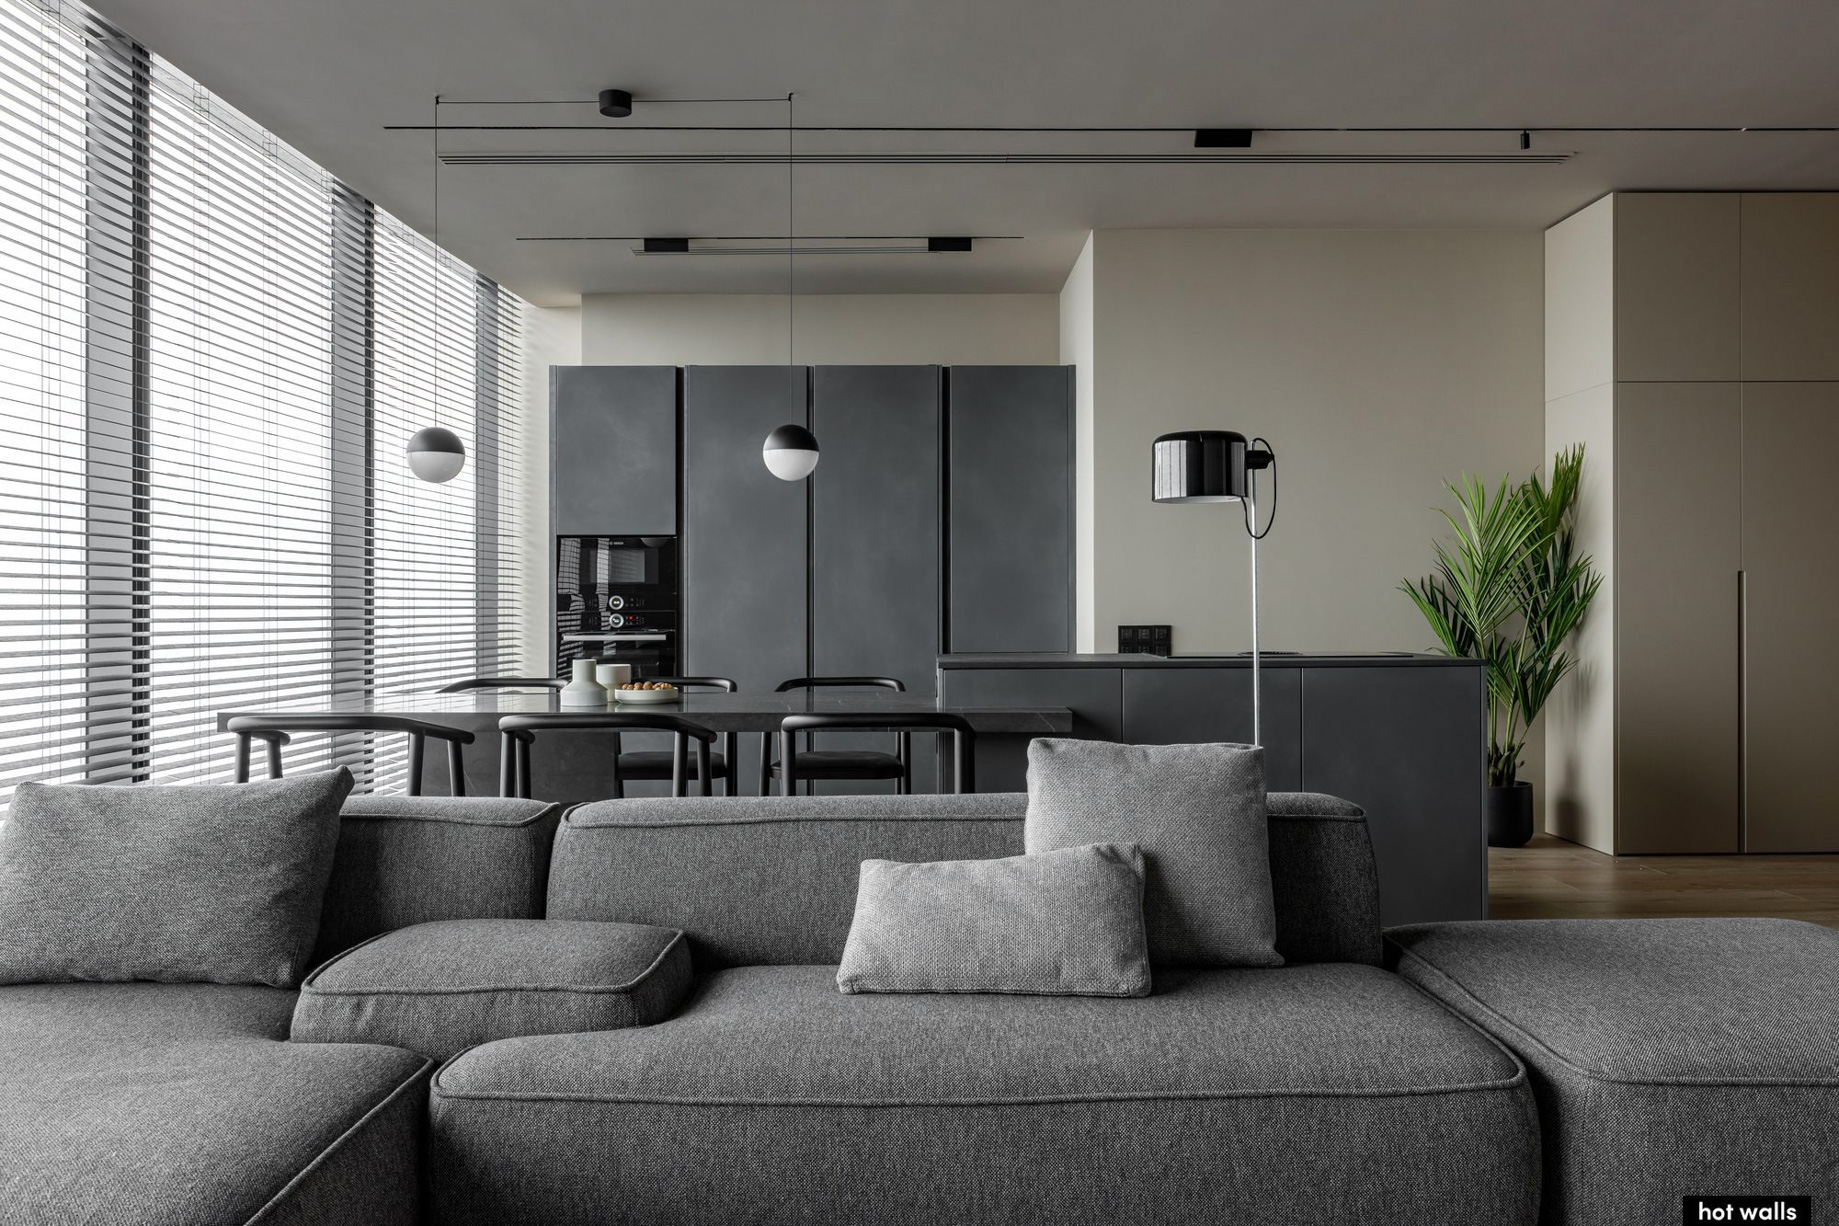 Federation Tower 79th Floor Apartment Interior Moscow, Russia – Hot Walls